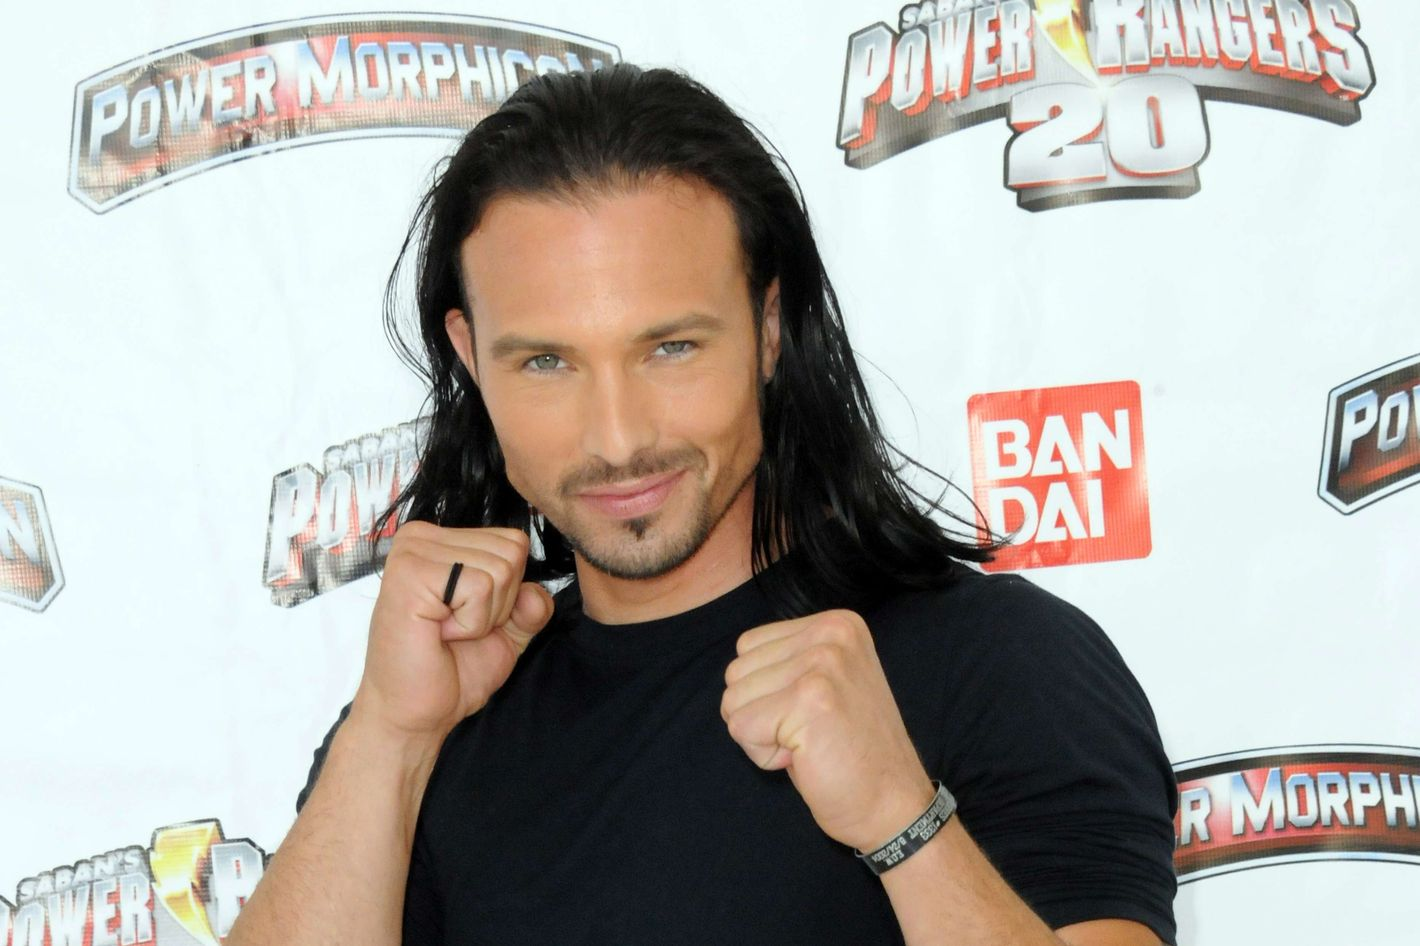 Former Power Rangers Actor Arrested for Allegedly Killing His